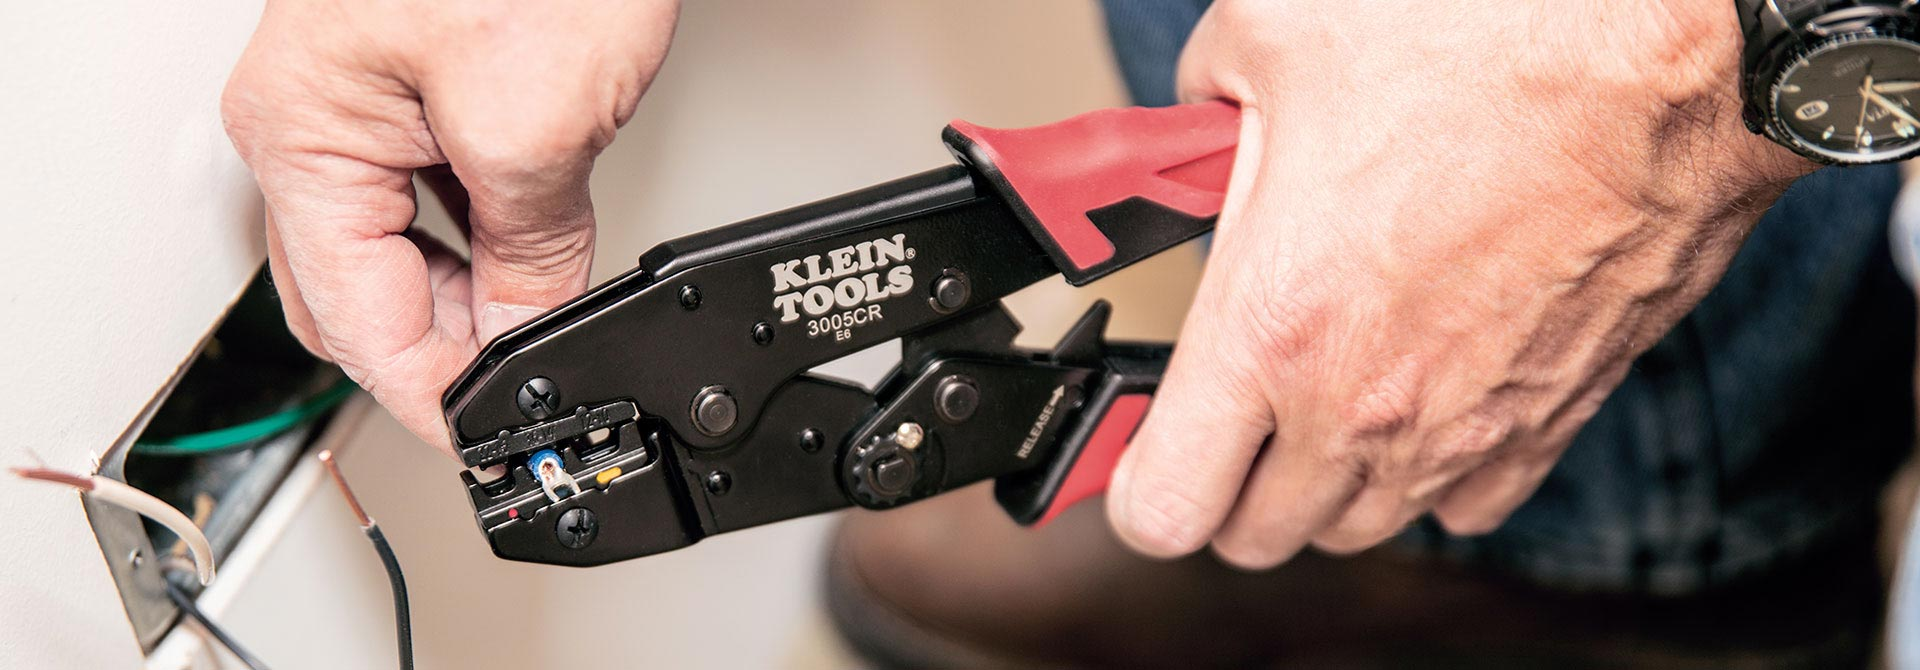 Three crimpers in one tool!